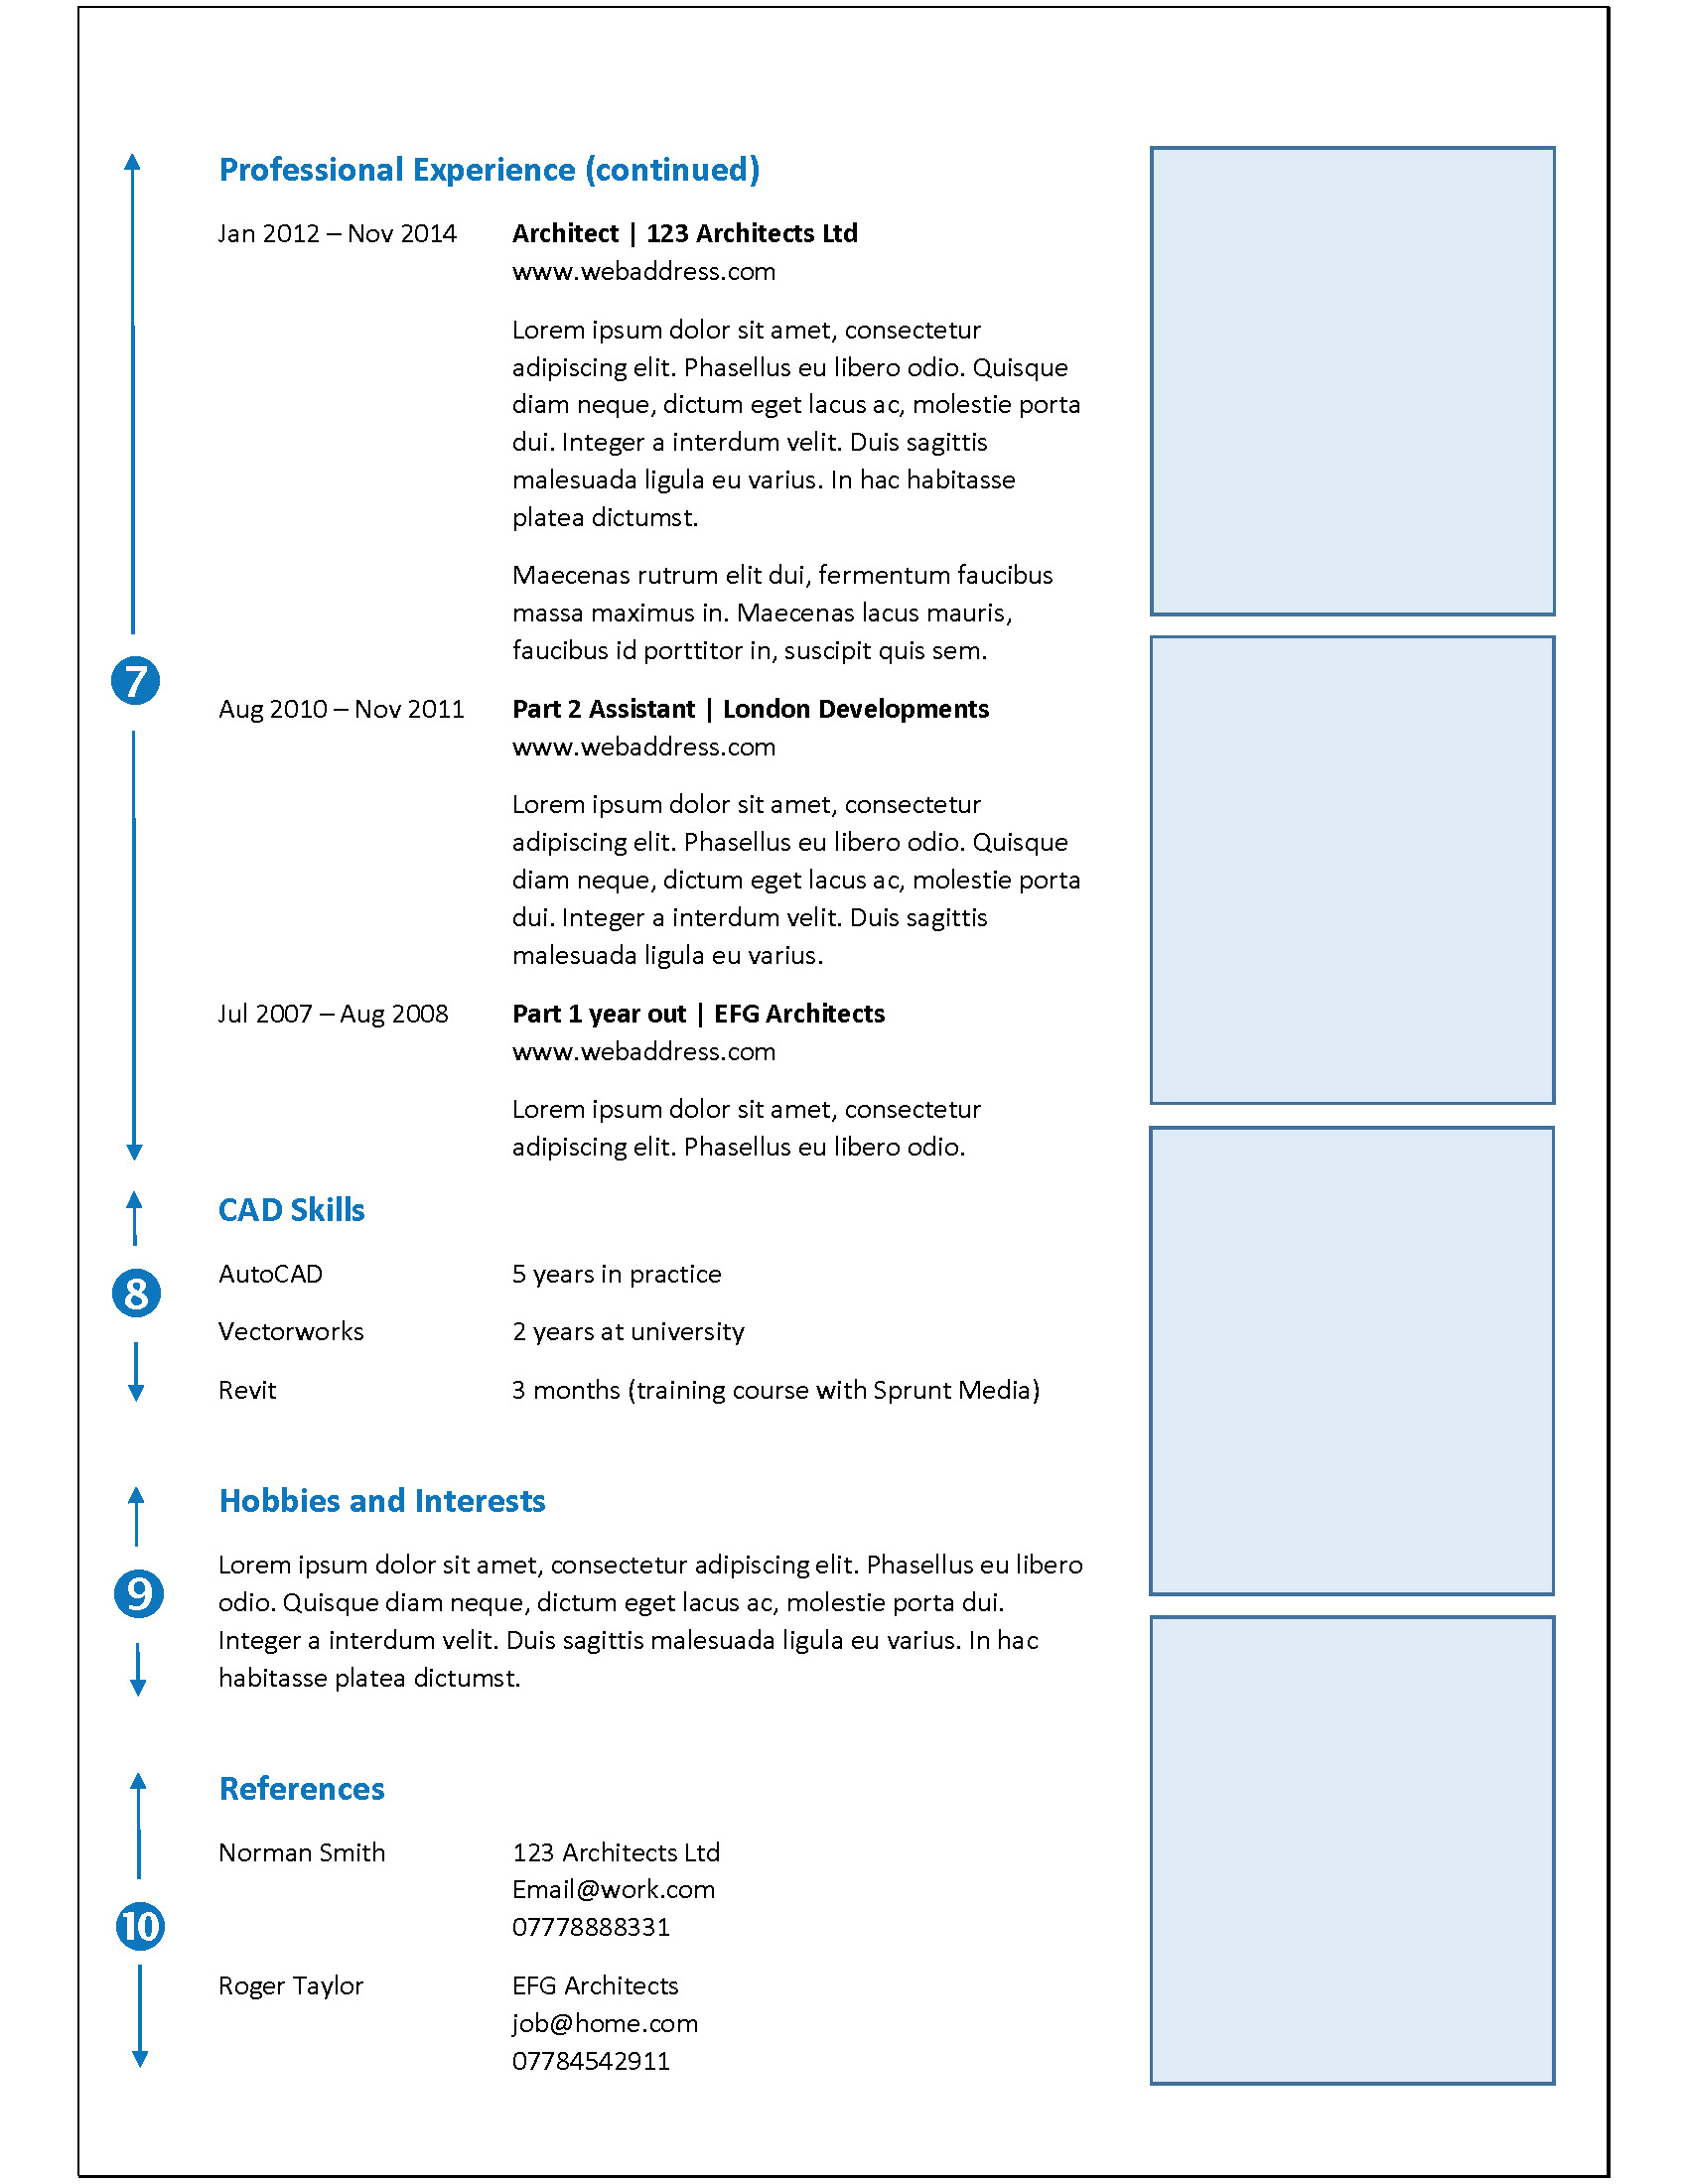 Sample cv architecture design 9b careers cad skills logos invariably look clunky so we wouldnt advise including them do however write the number of years you have worked on the main systems altavistaventures Image collections